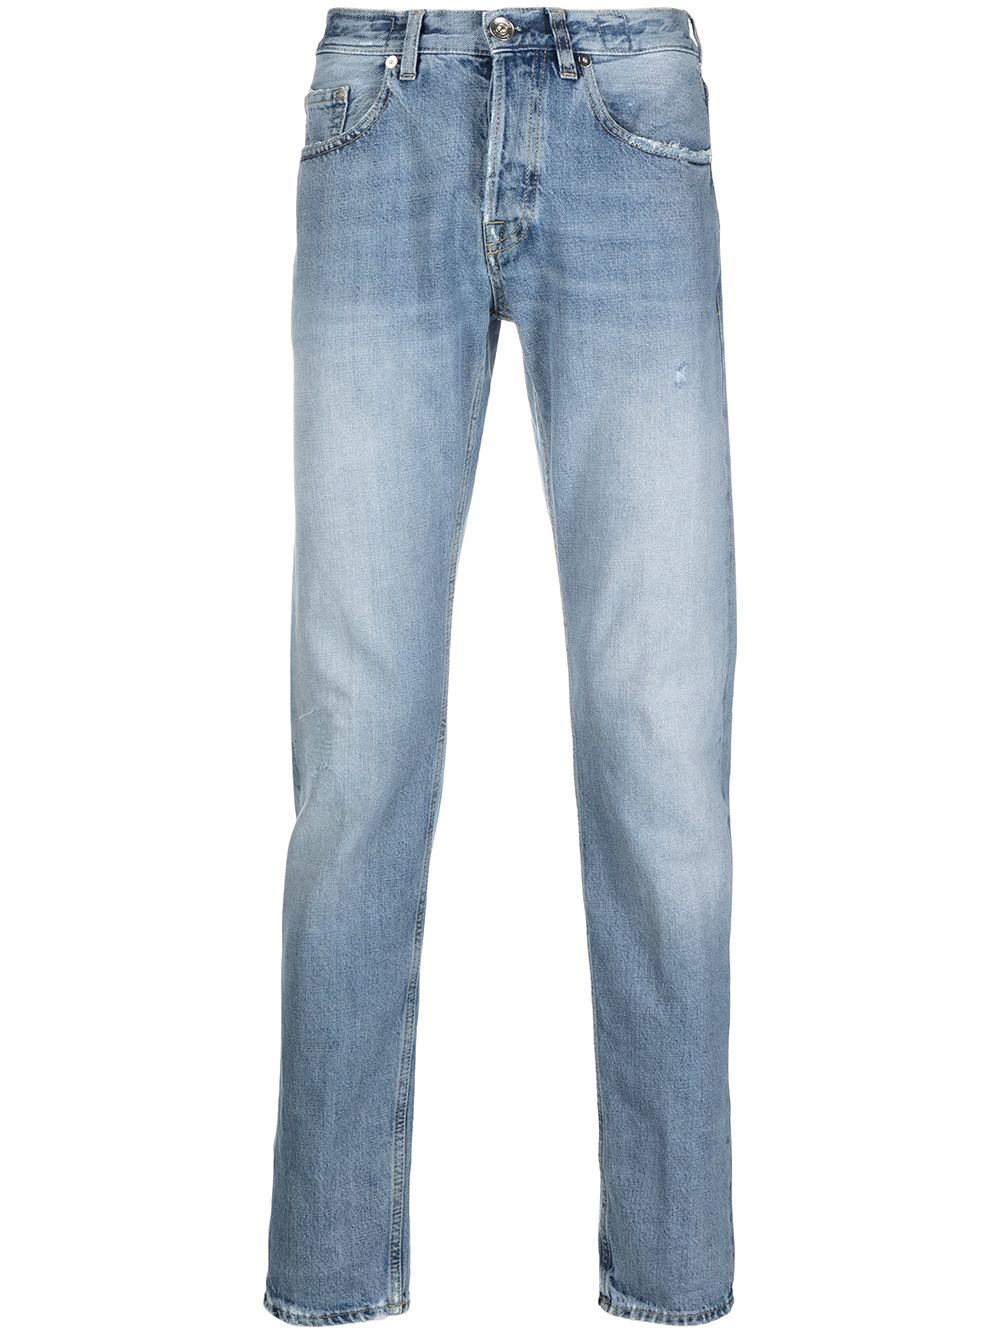 Blue cotton denim straight-leg jeans  ELEVENTY |  | C75PANC06-TET0C01008